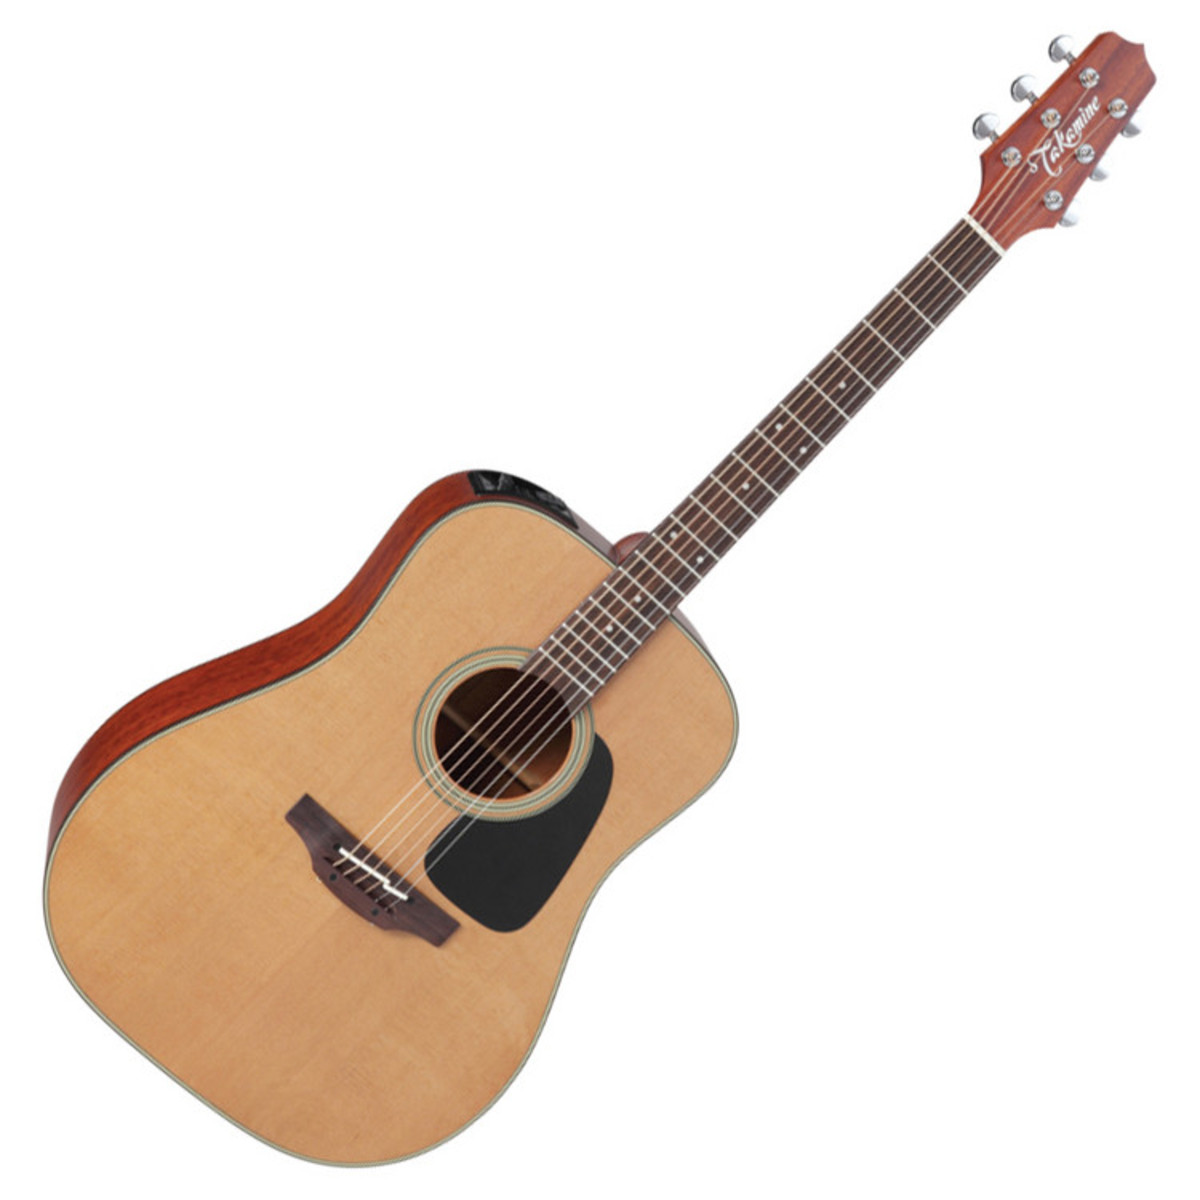 disc takamine pro series p1d dreadnought electro acoustic guitar at. Black Bedroom Furniture Sets. Home Design Ideas